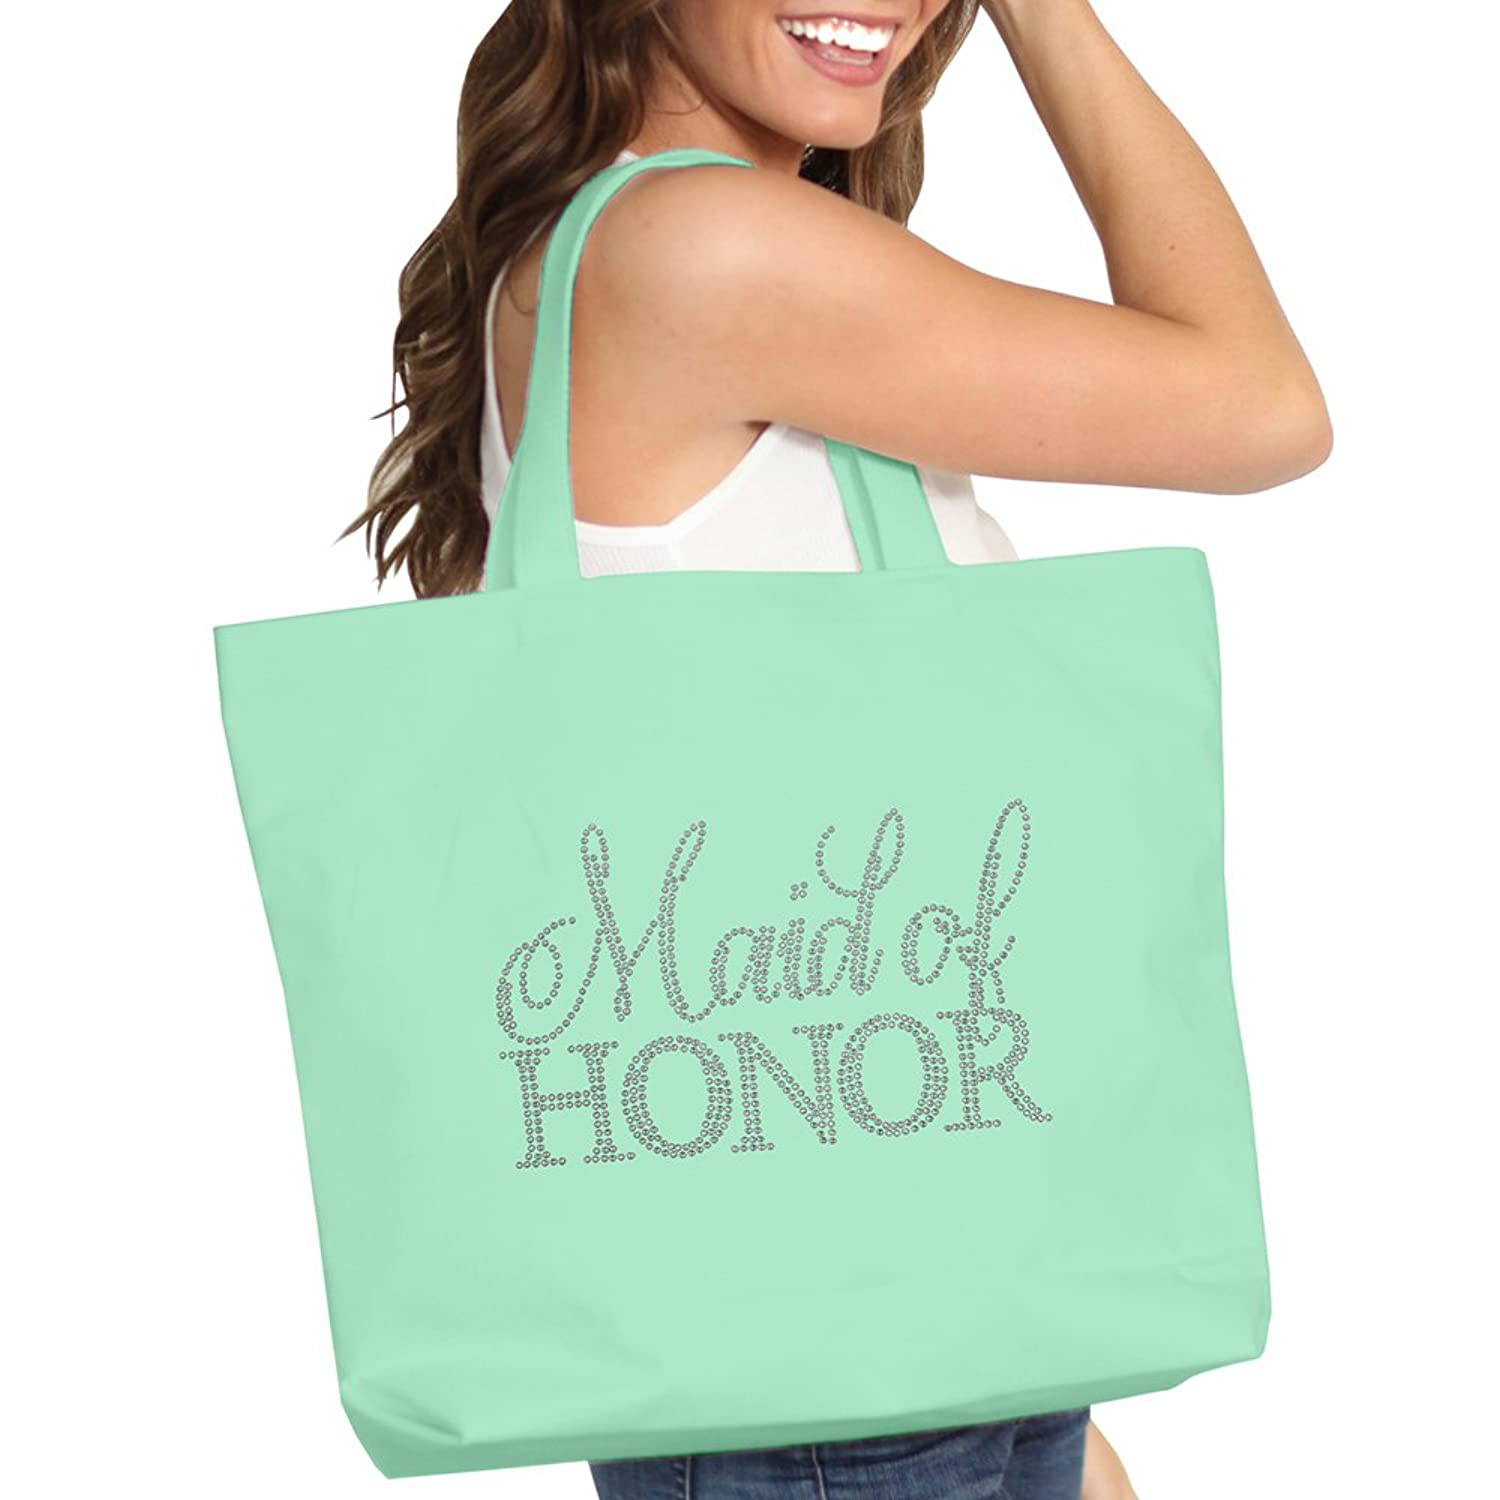 rhinestone maid of honor tote bag bridal shower gift idea bachelorette favor